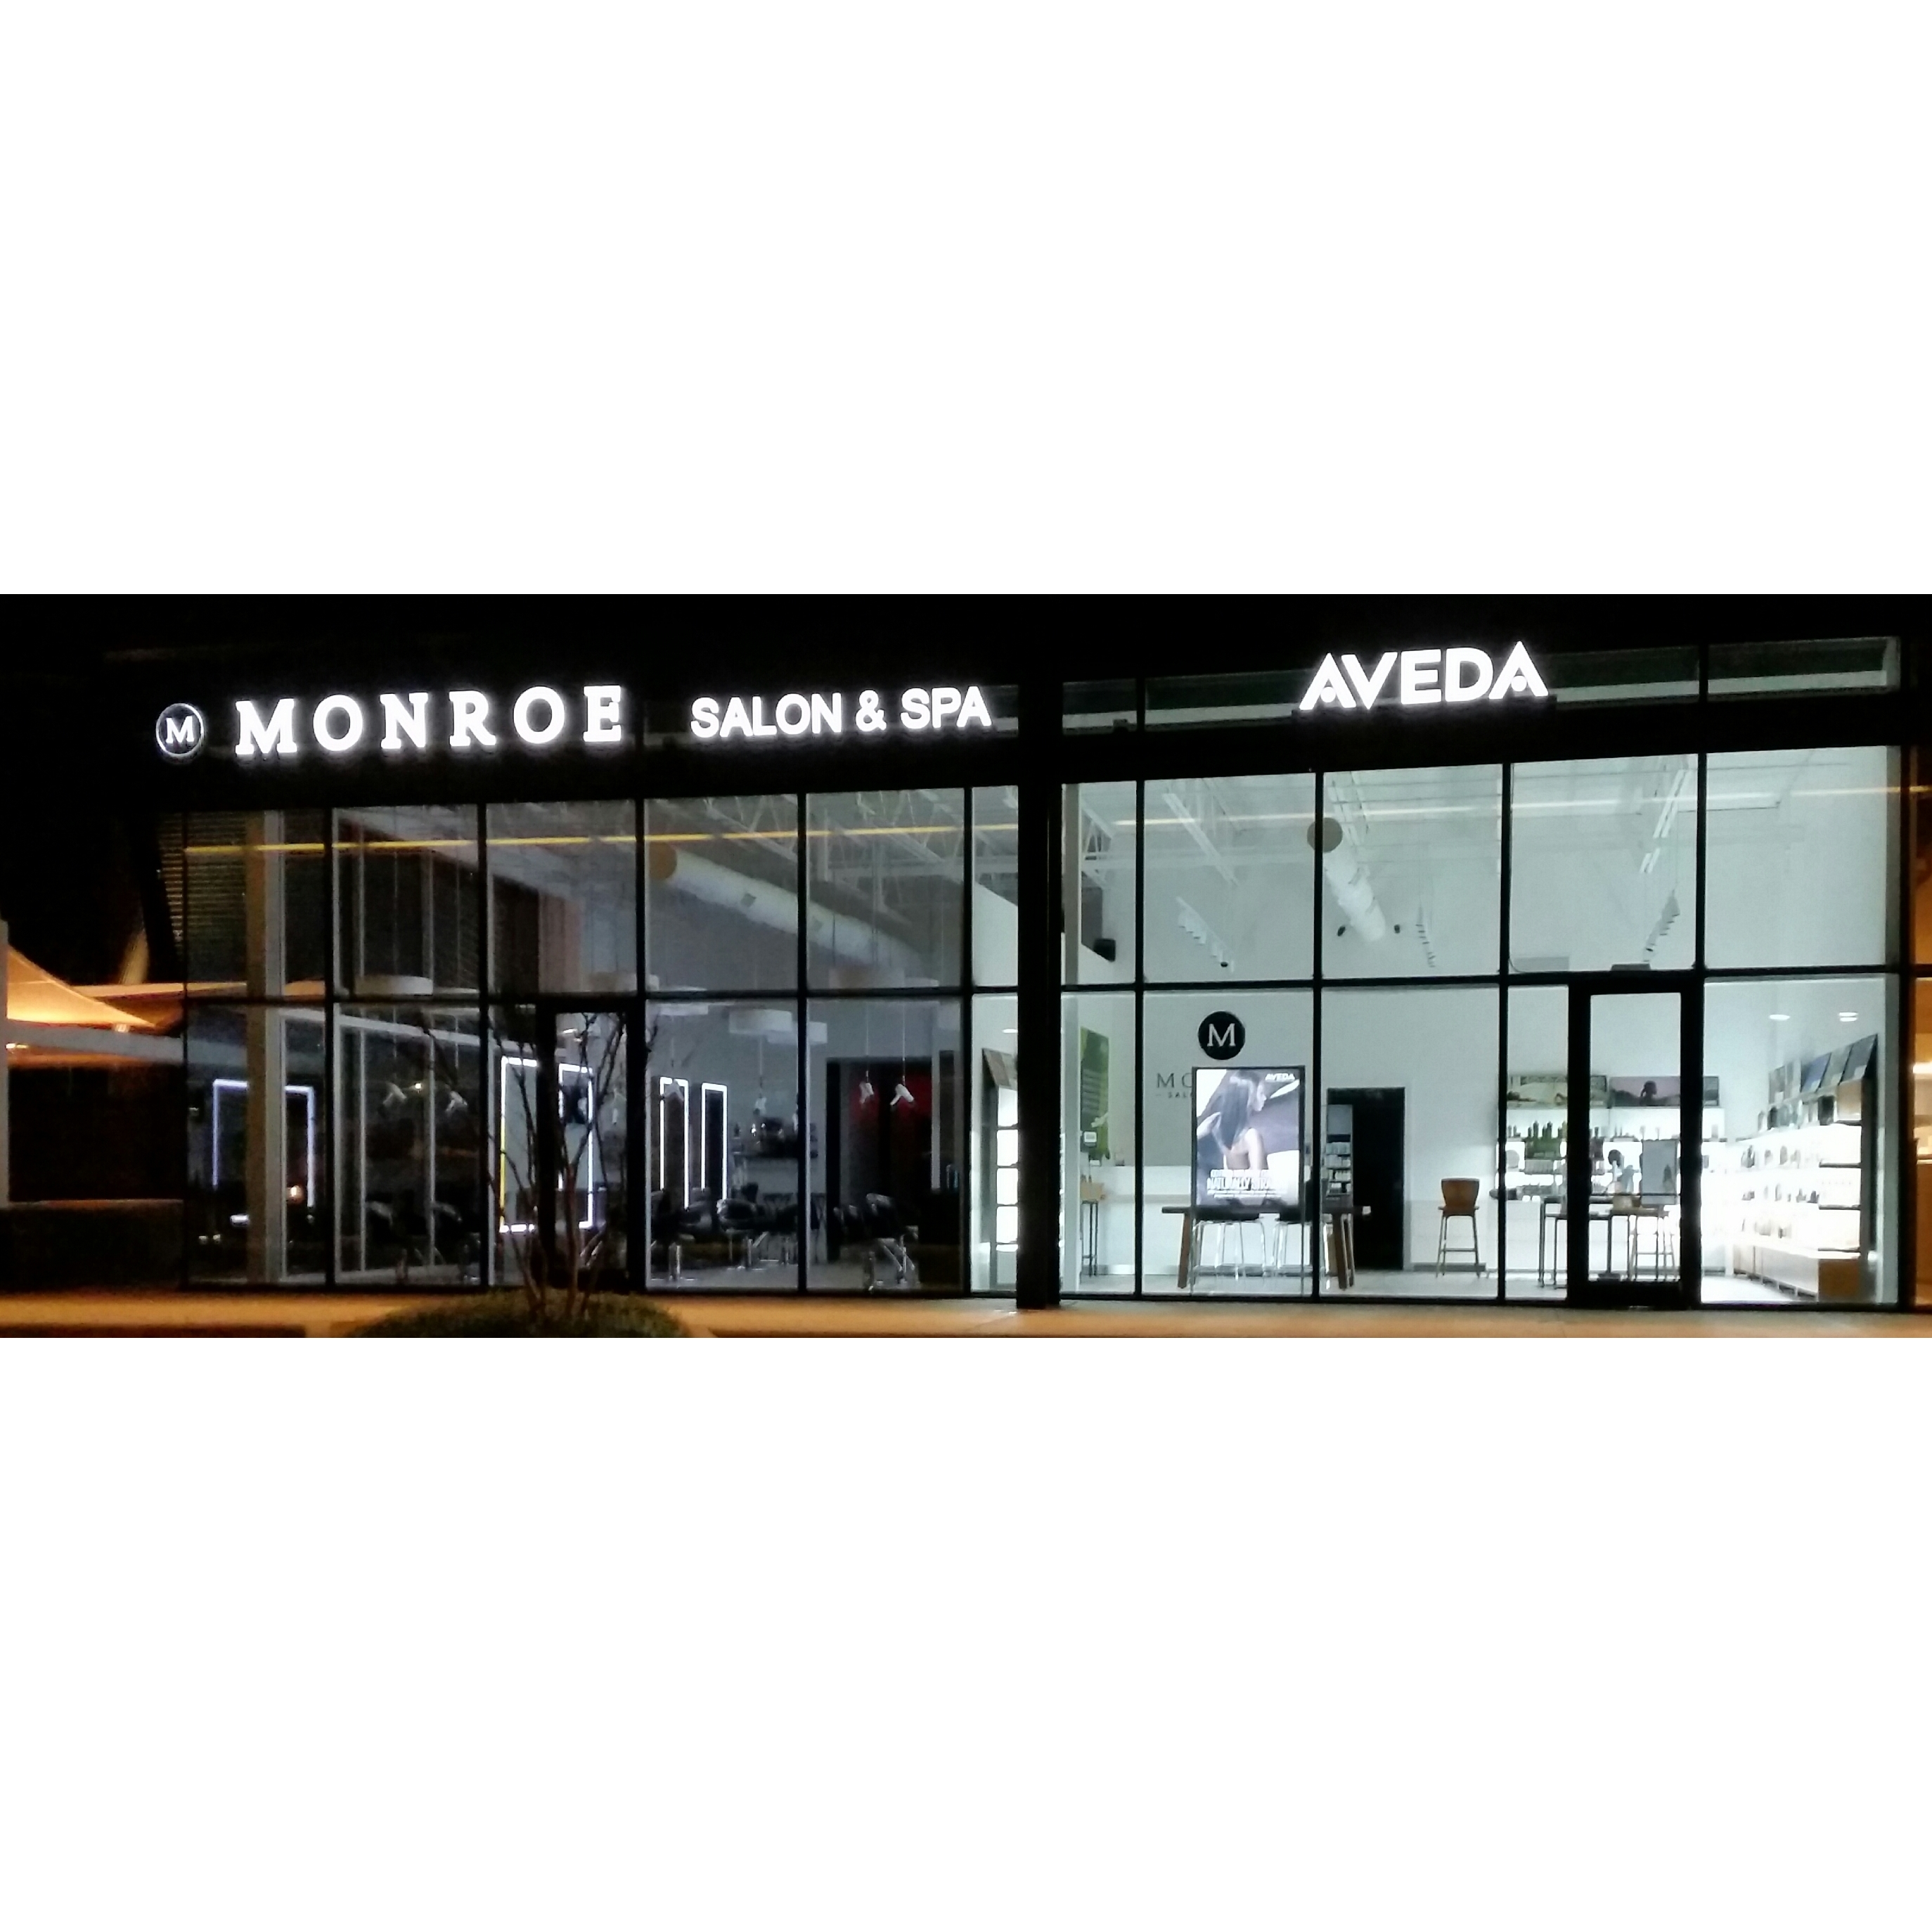 Monroe Salon and Spa Aveda